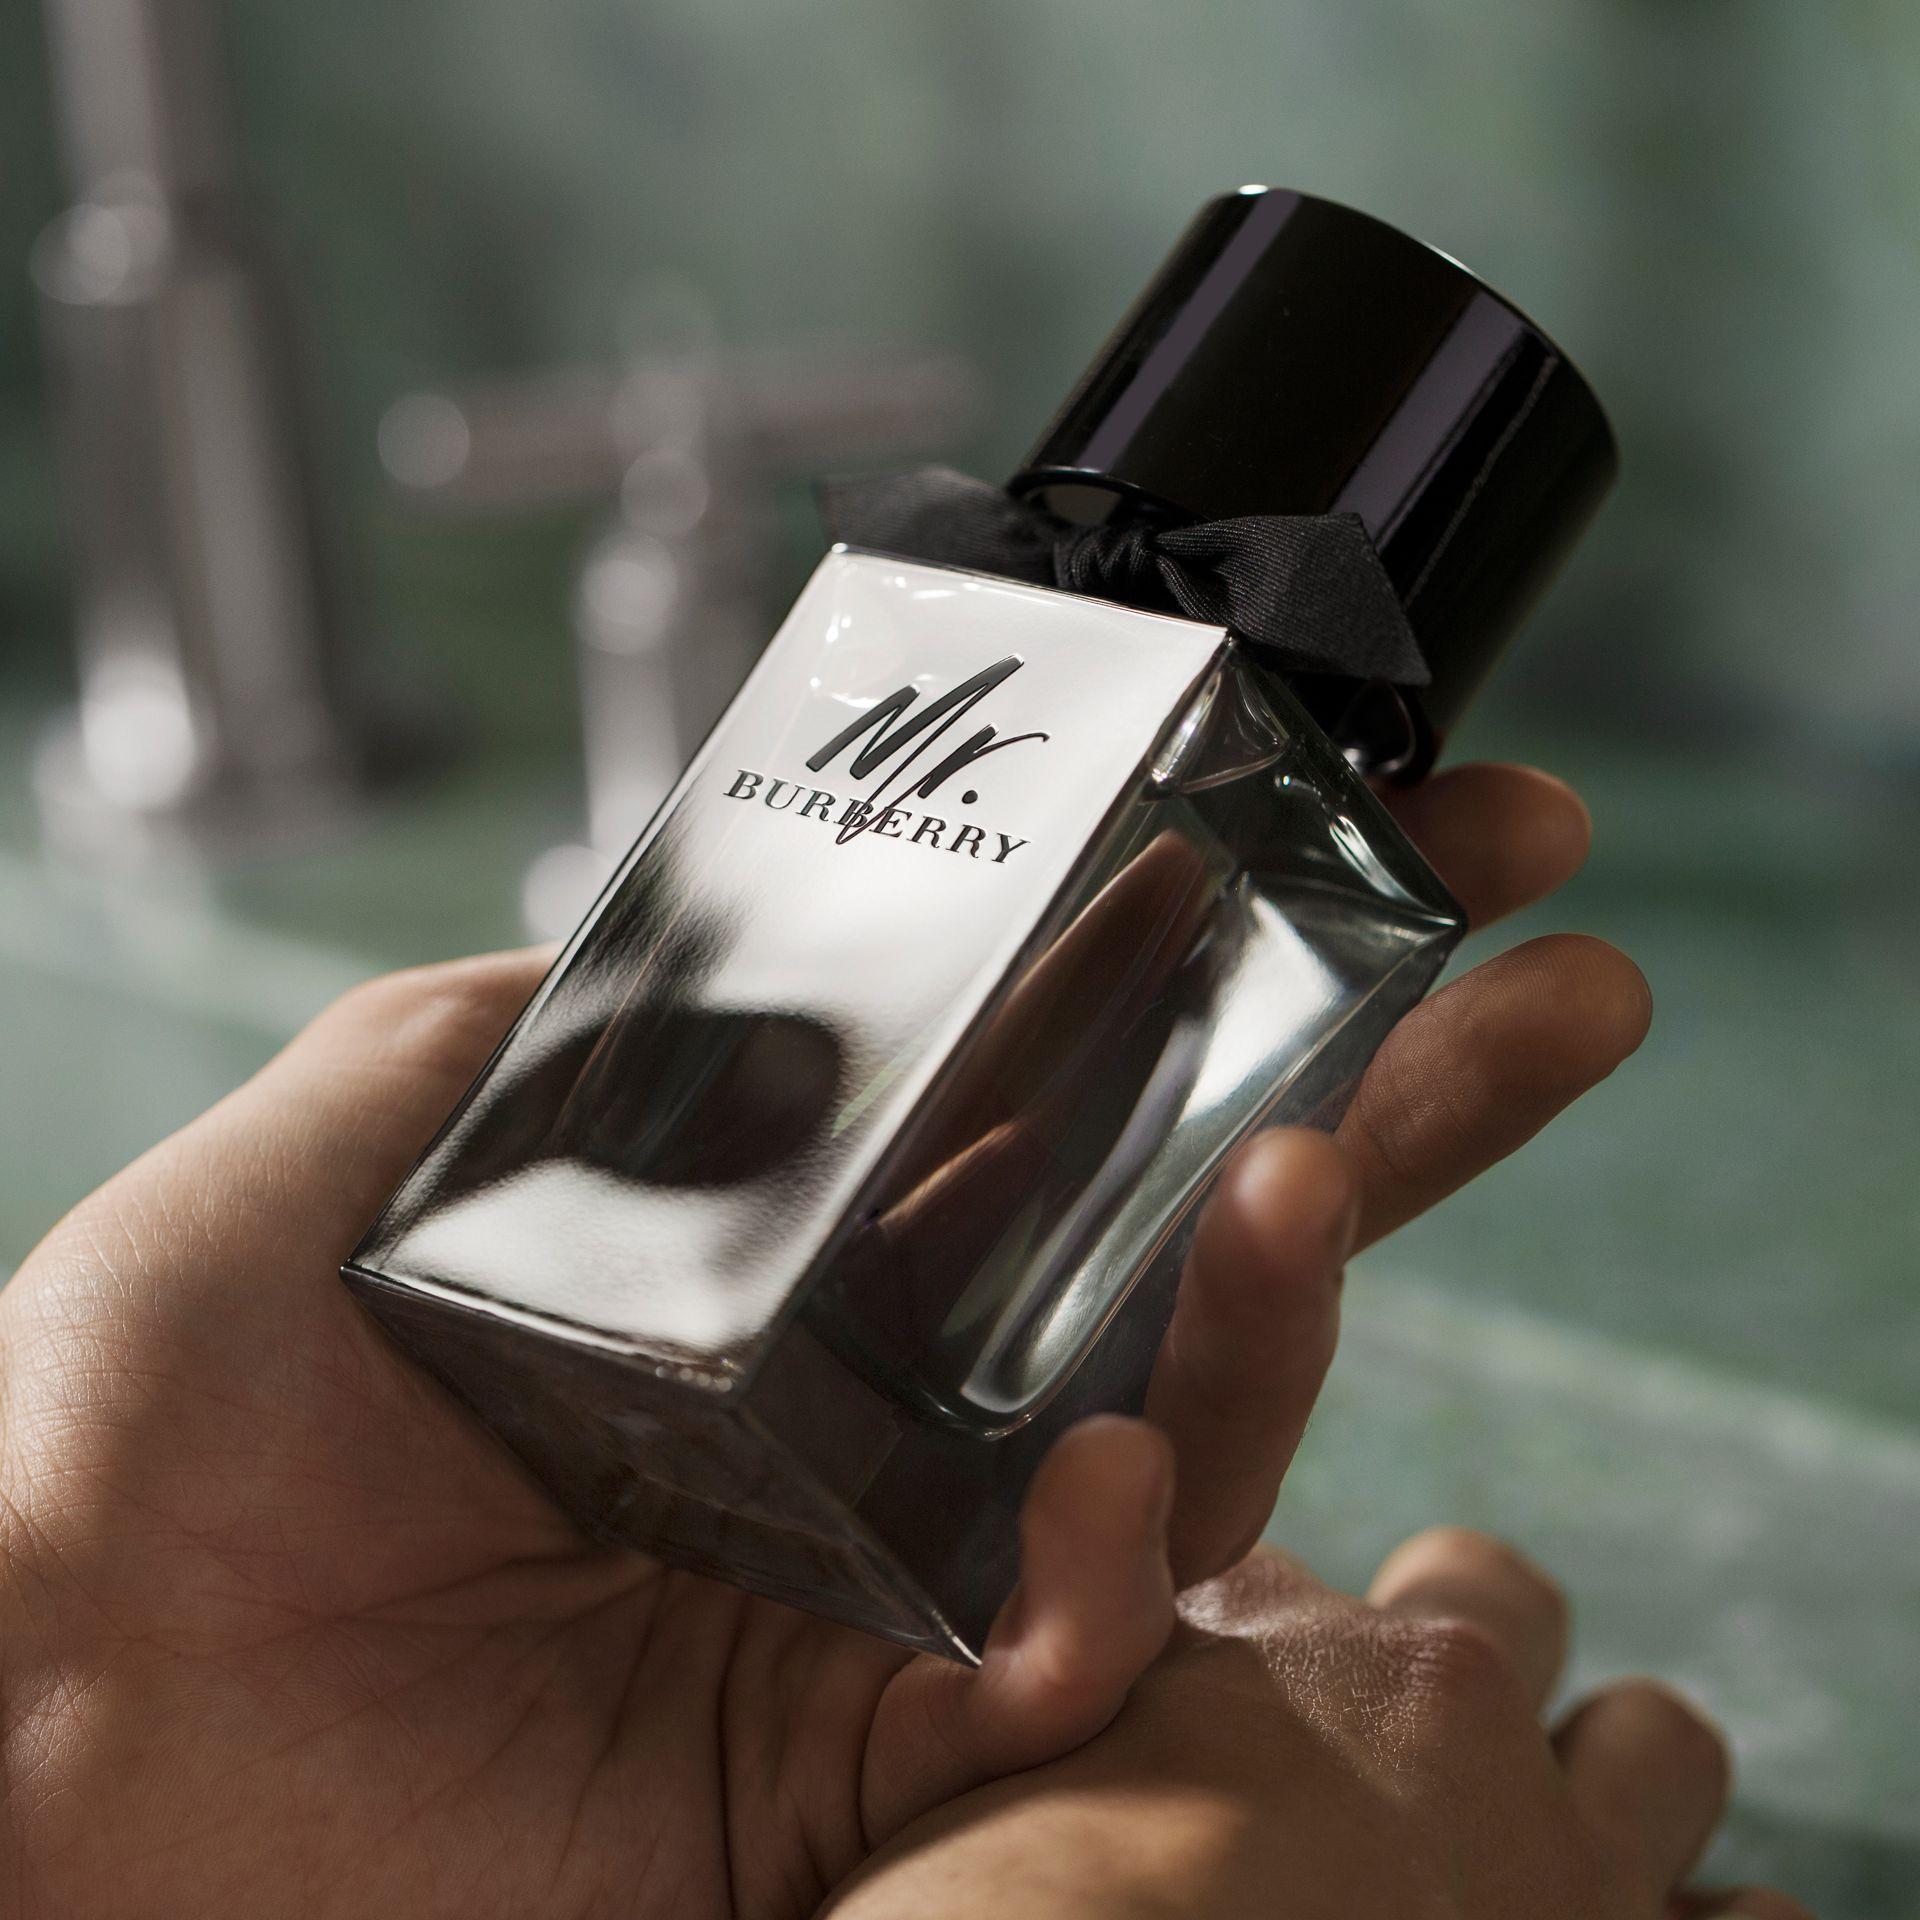 Mr. Burberry Eau de Toilette 100 ml | Burberry - Galerie-Bild 1